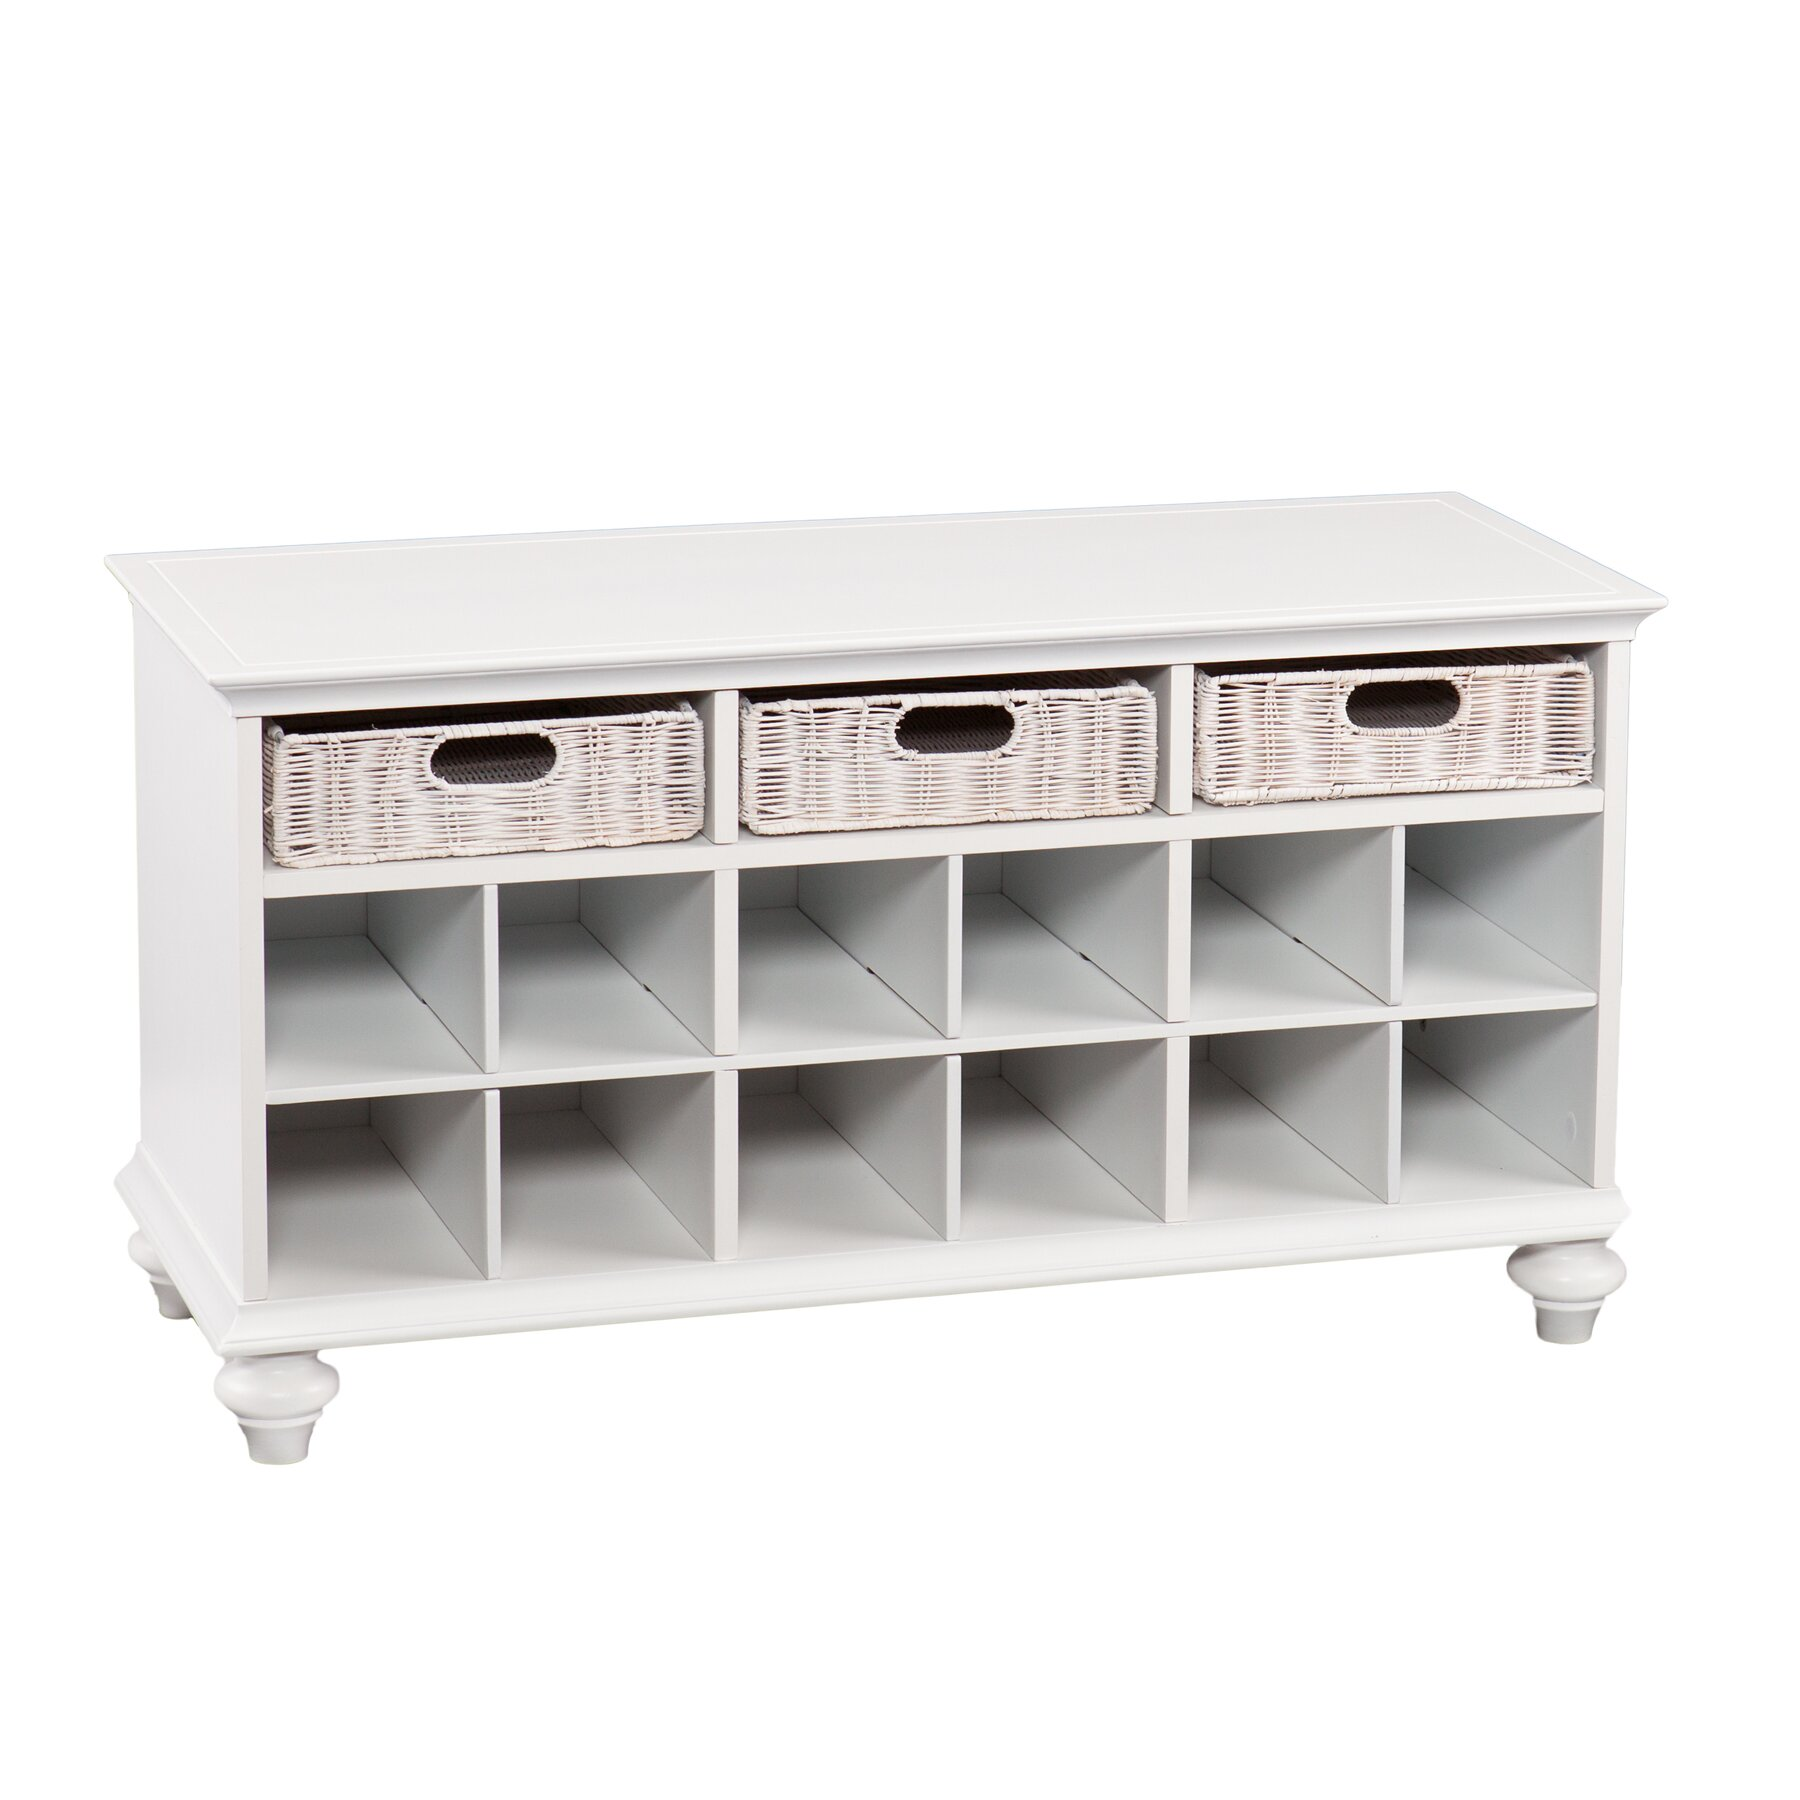 Home etc chelmsford wood storage hallway bench reviews for Furniture etc reviews